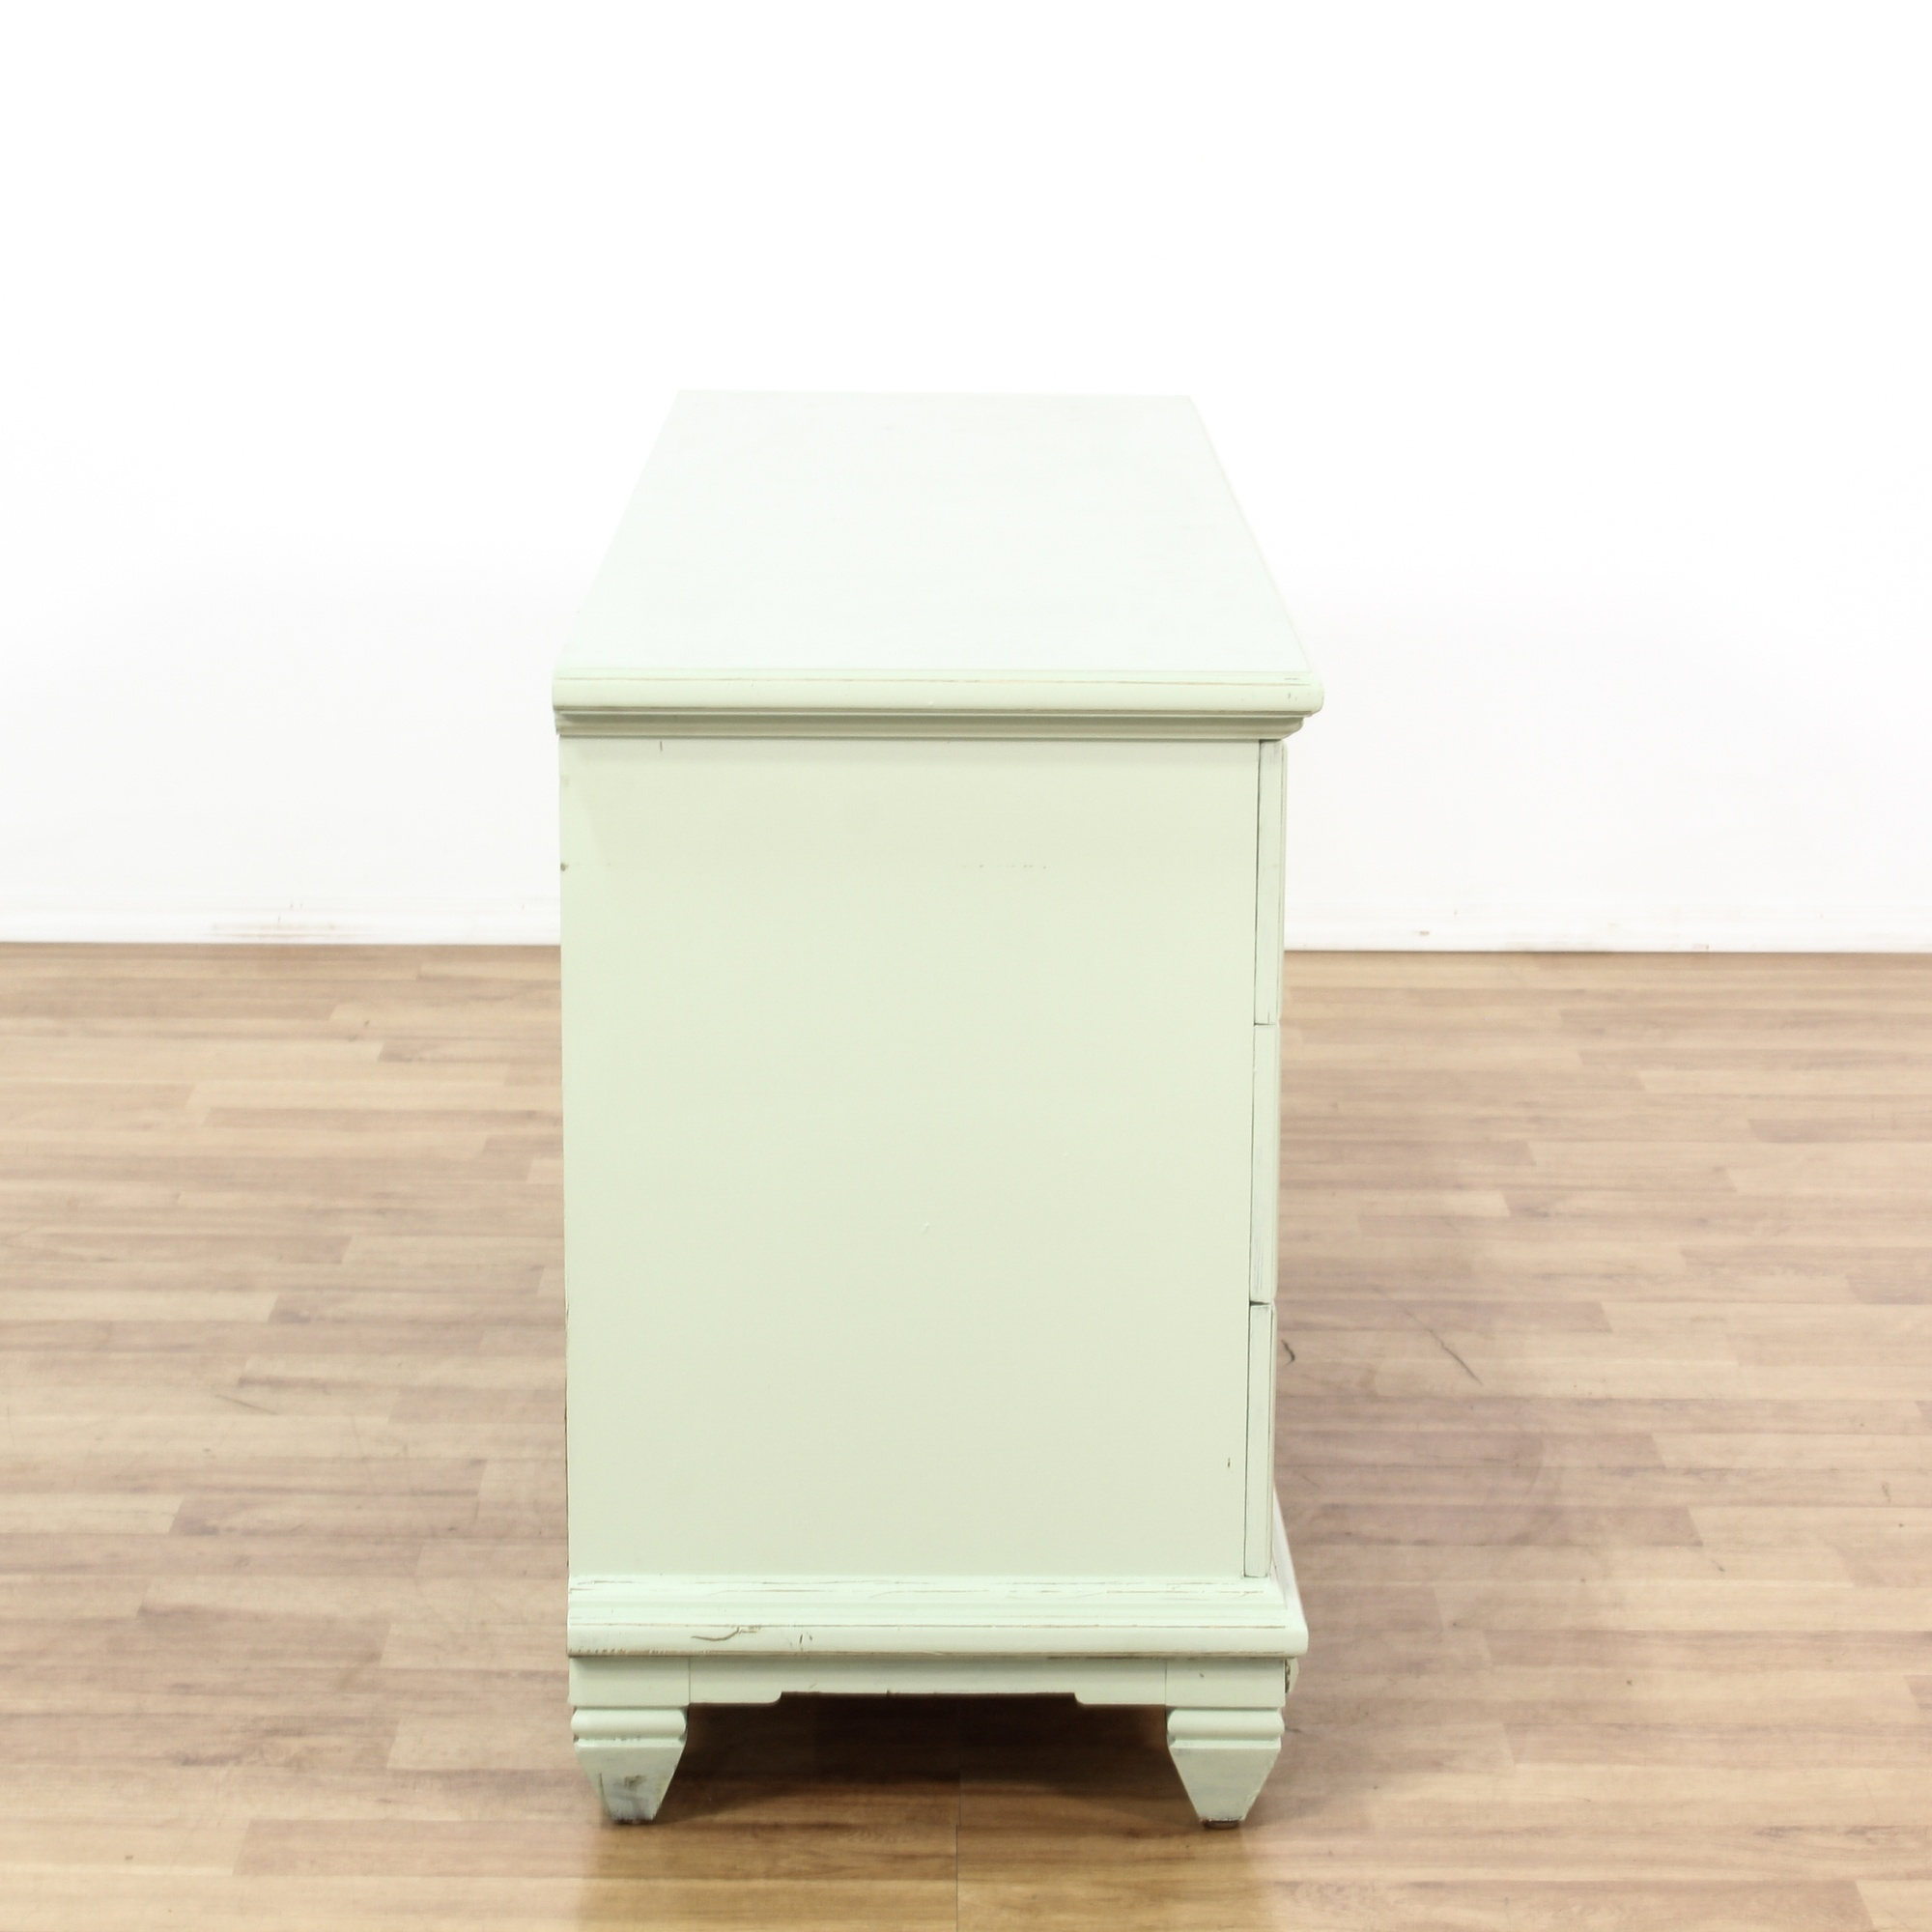 #2A1A0E Shabby Chic White Long 6 Drawer Dresser Loveseat Vintage Furniture  with 2000x2000 px of Most Effective White Long Dresser 20002000 wallpaper @ avoidforclosure.info